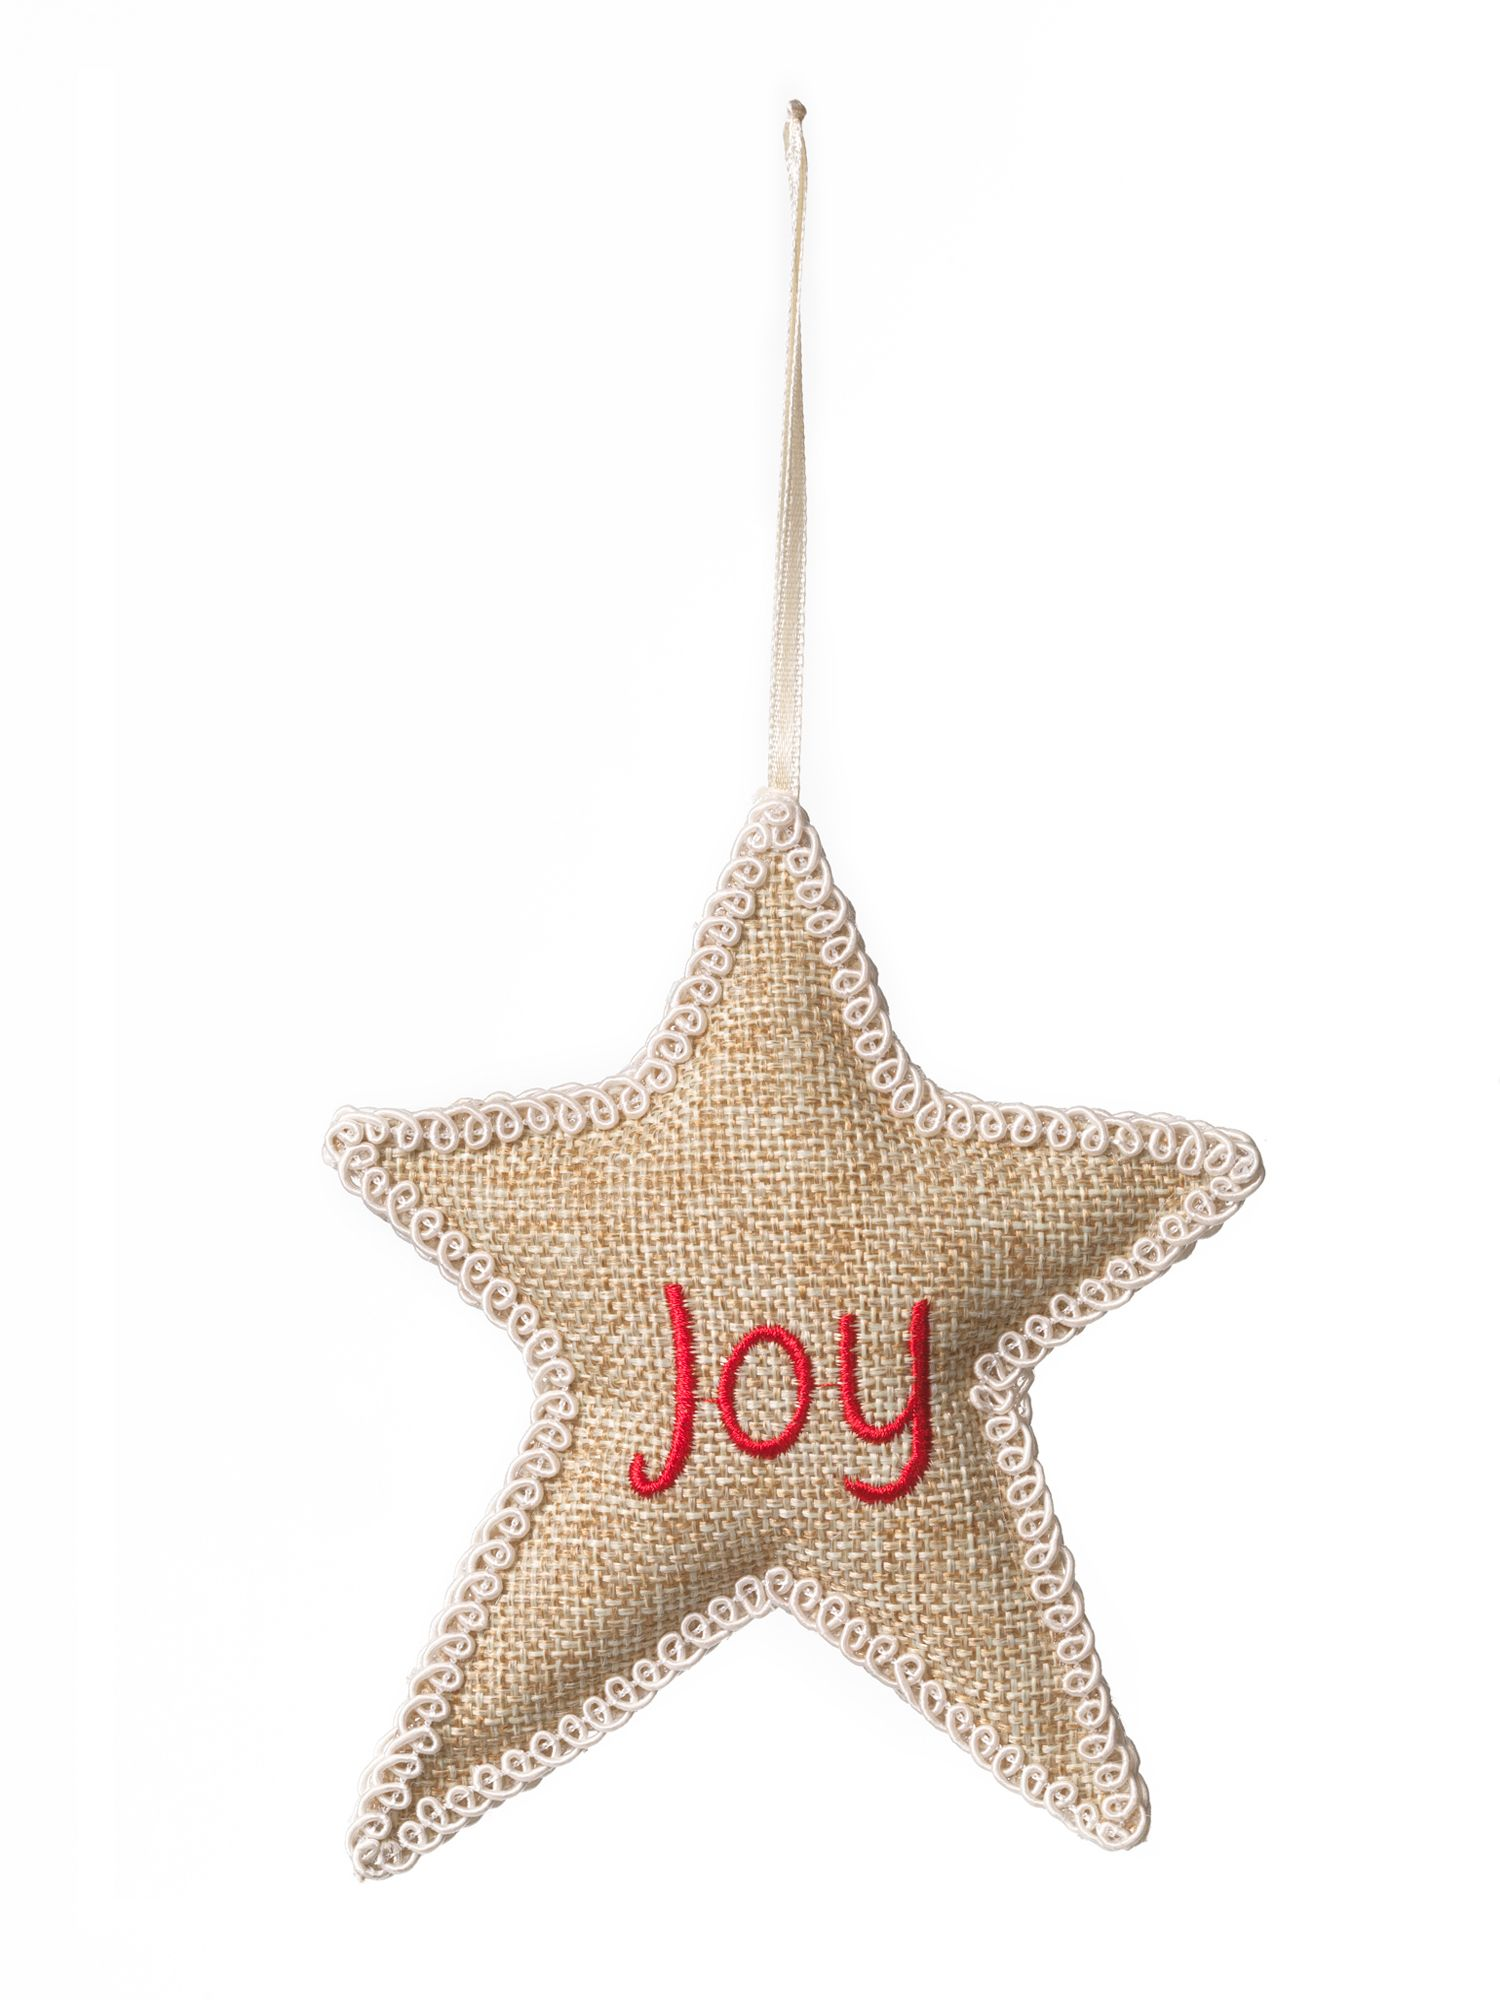 Assorted Joy, Wish and Love decorations